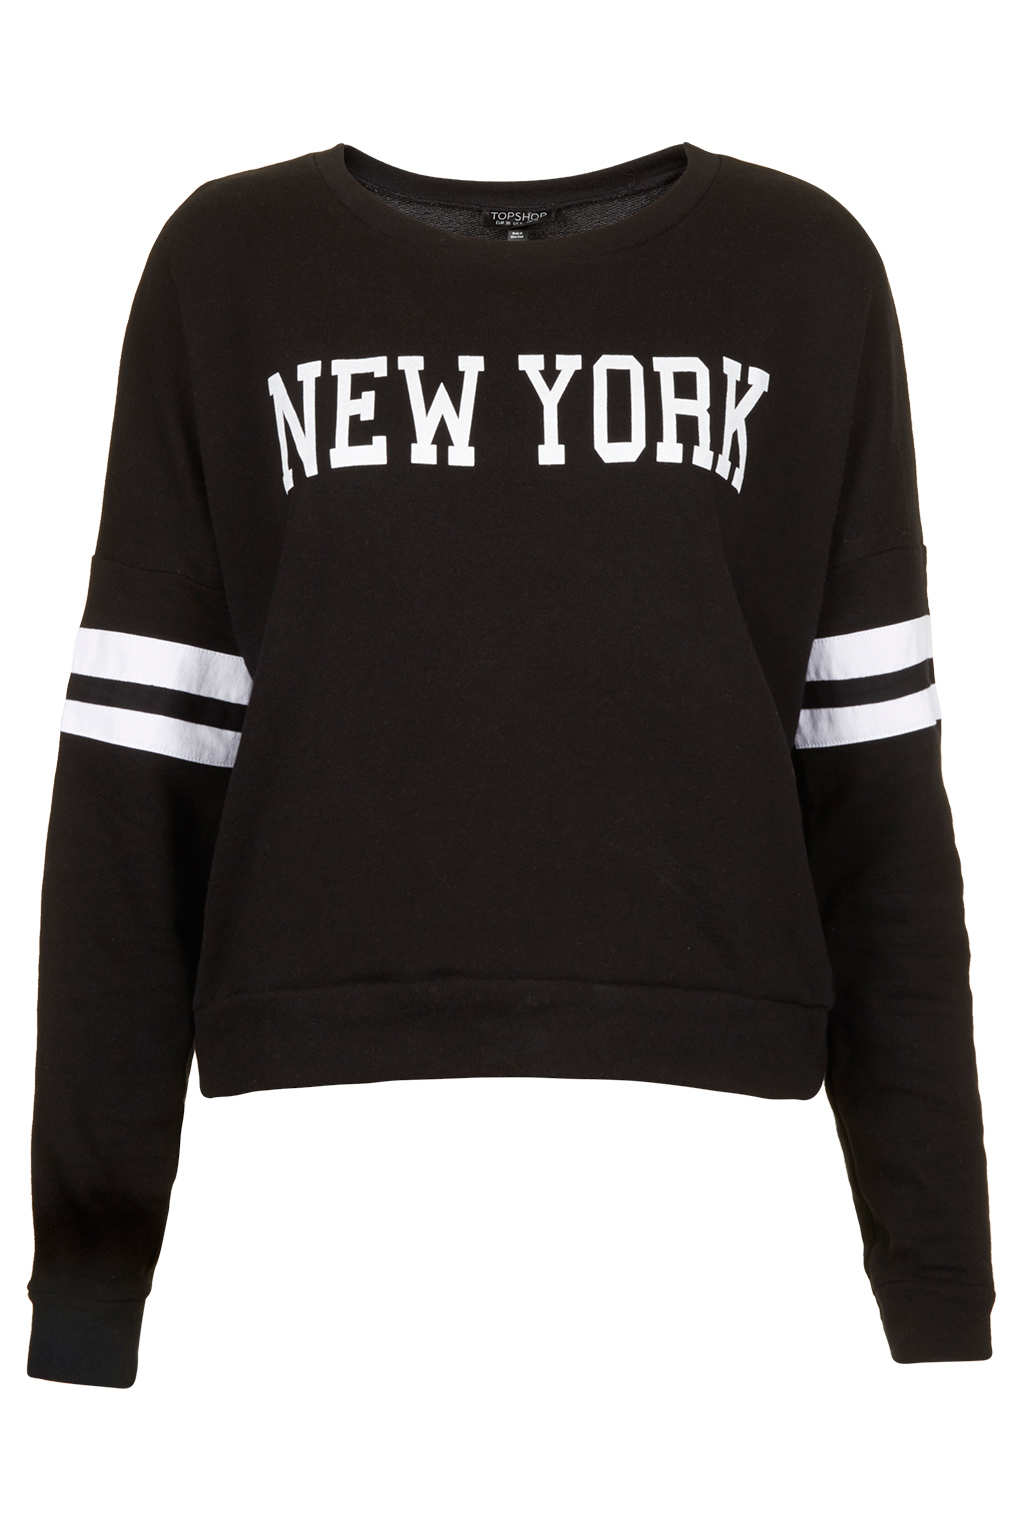 lyst topshop new york long sleeve sweat in black. Black Bedroom Furniture Sets. Home Design Ideas